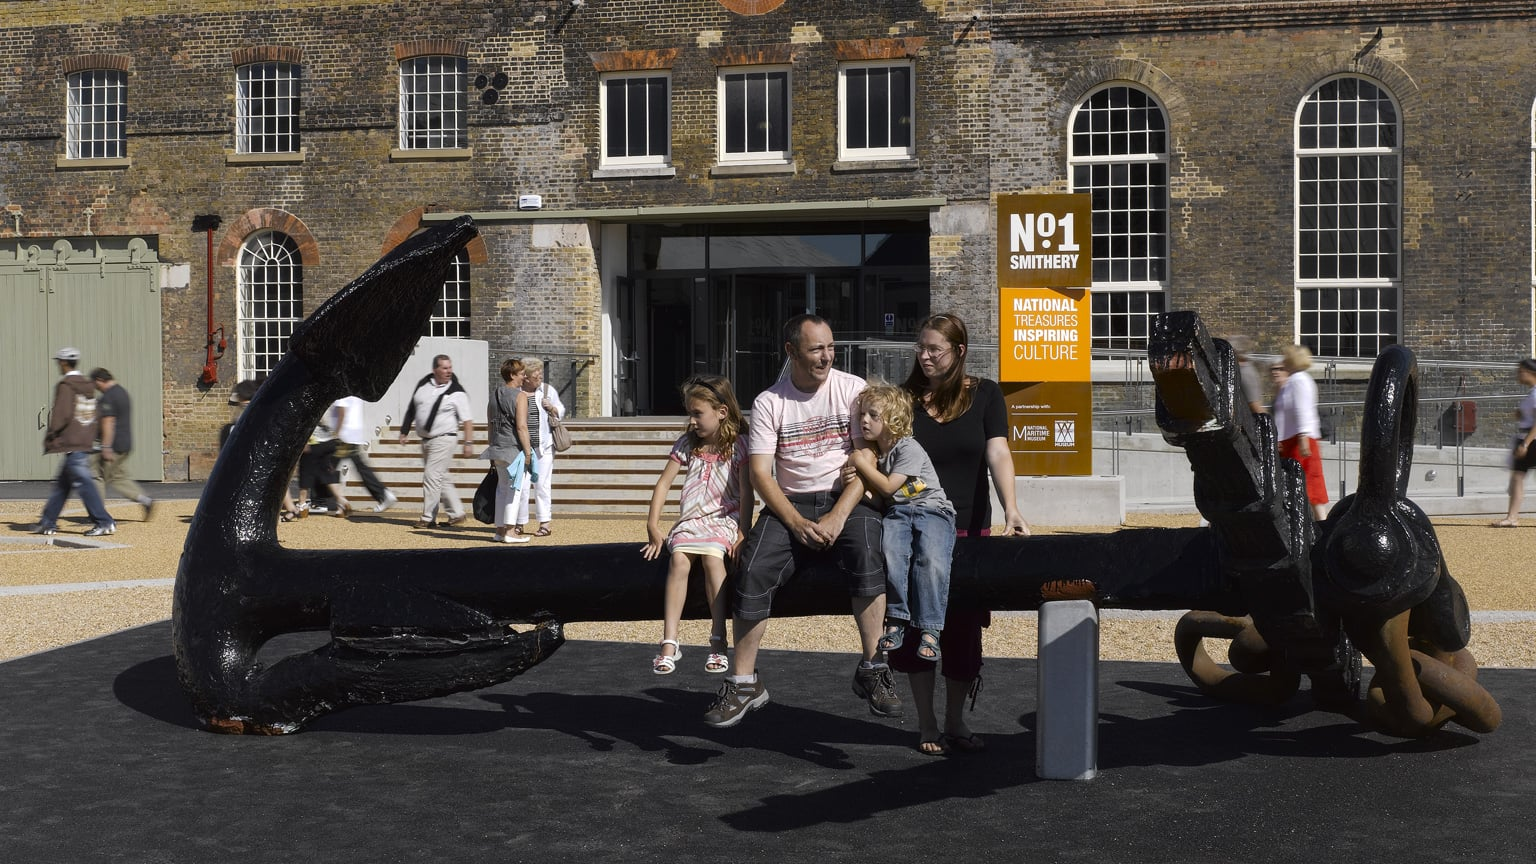 2. The Historic Dockyard Chatham, Kent - Free entry and exhibitions with National Art Pass